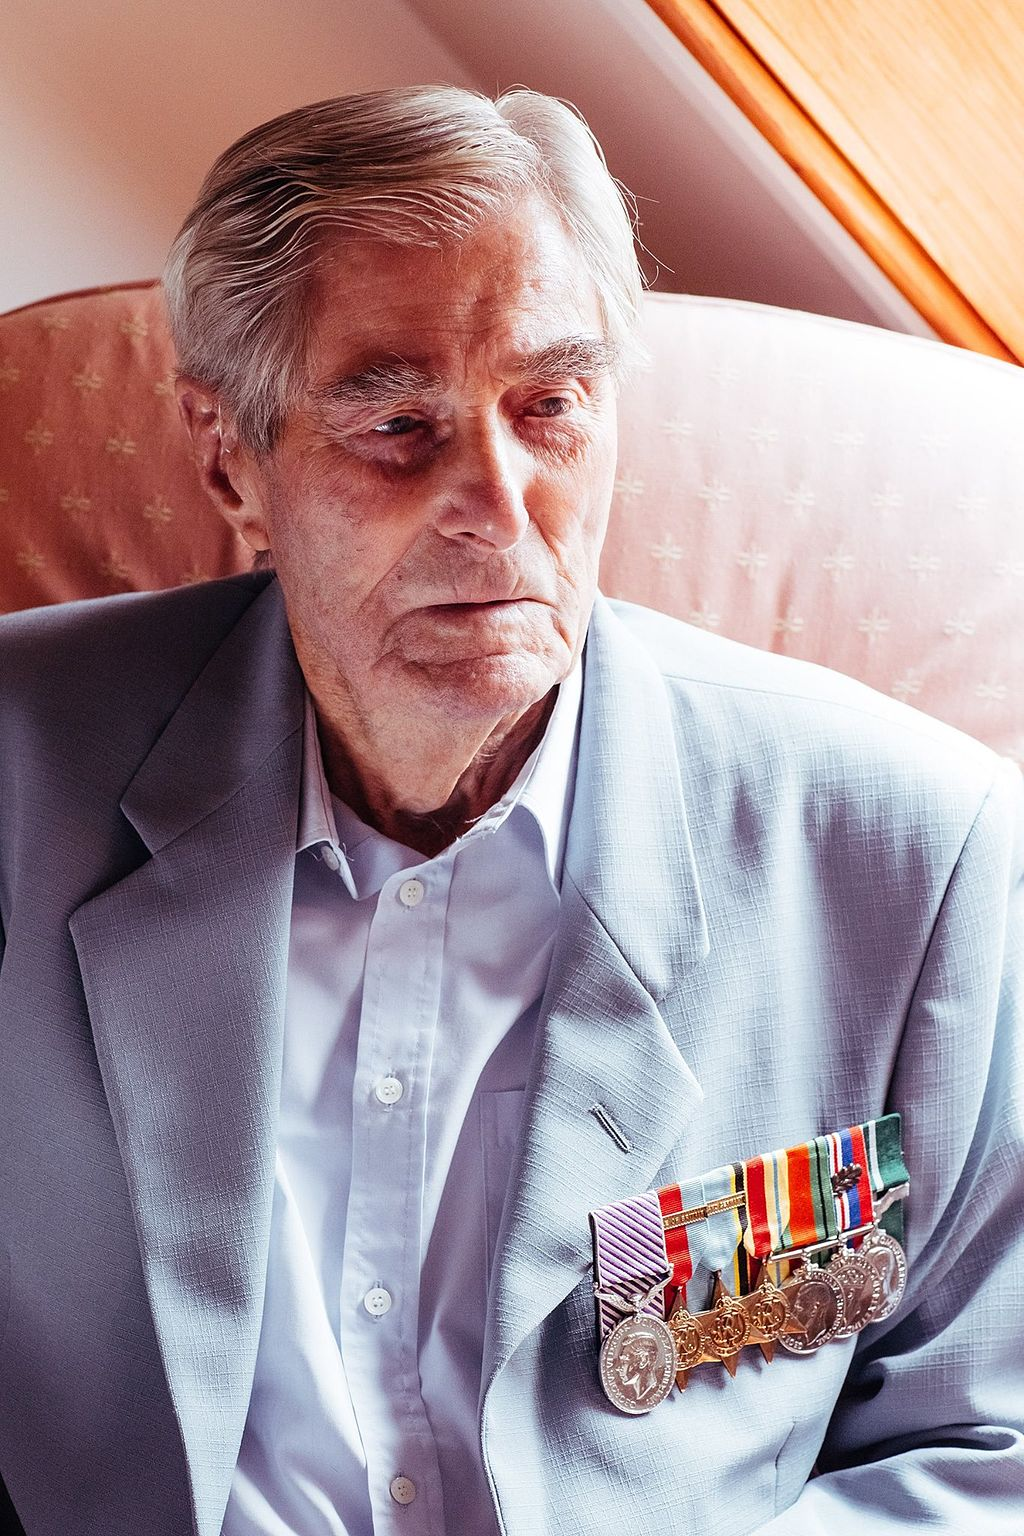 Wing Commander Paul Farnes Oem89 [CC BY-SA (https://creativecommons.org/licenses/by-sa/4.0)]